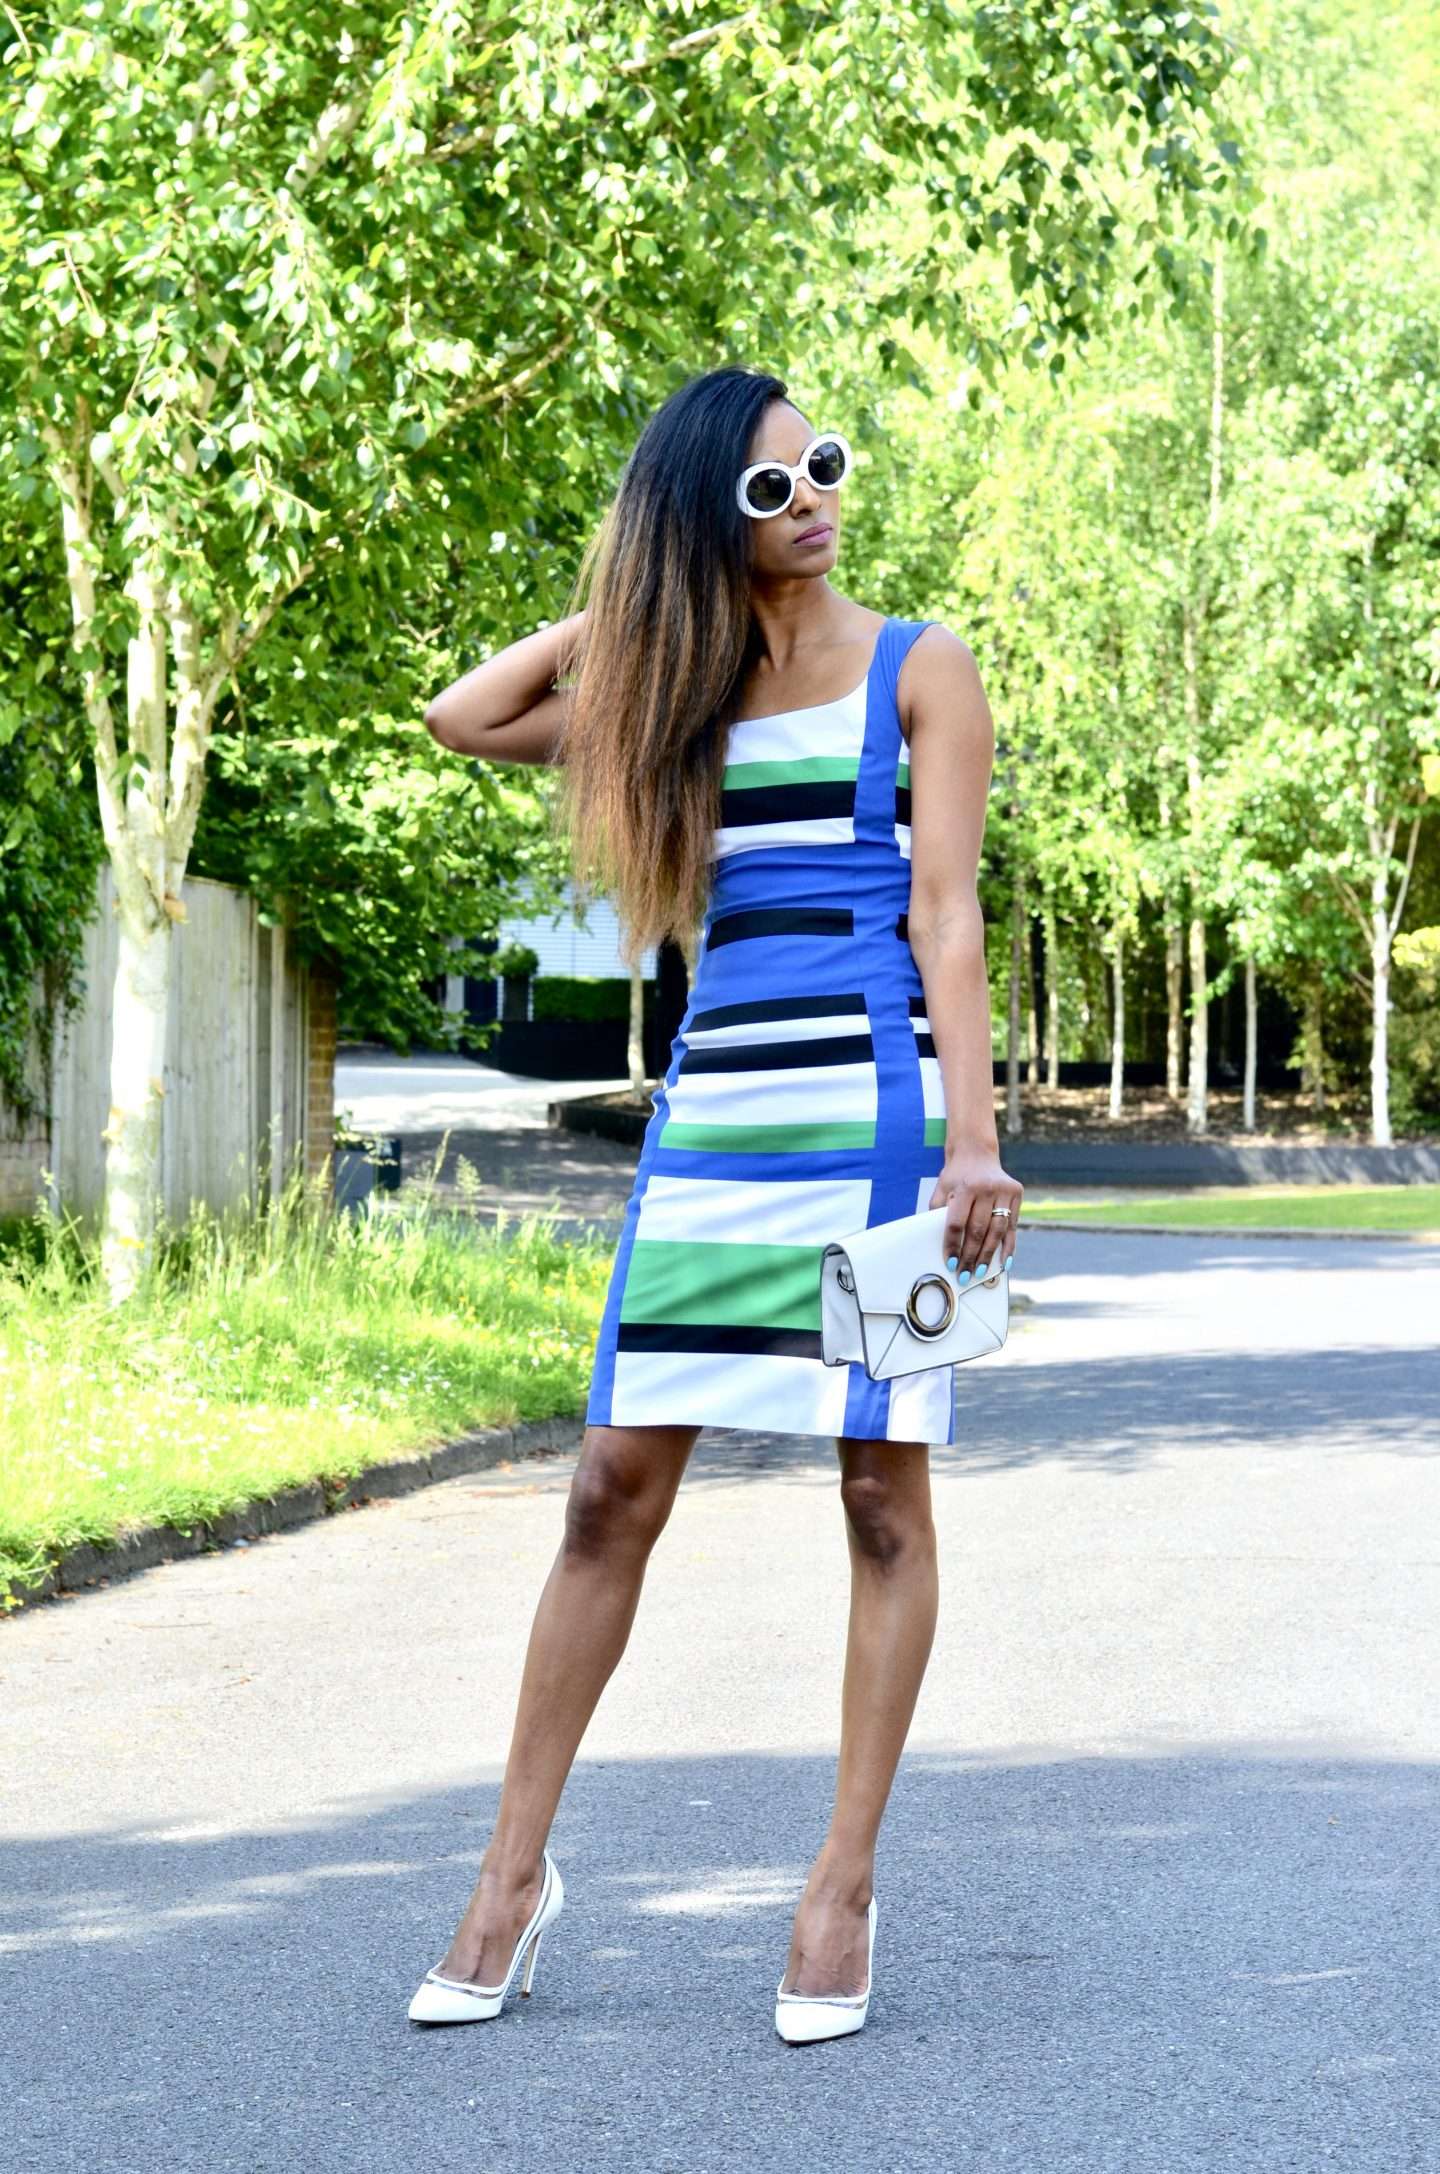 HOW TO WEAR THE BOLD STRIPES TREND